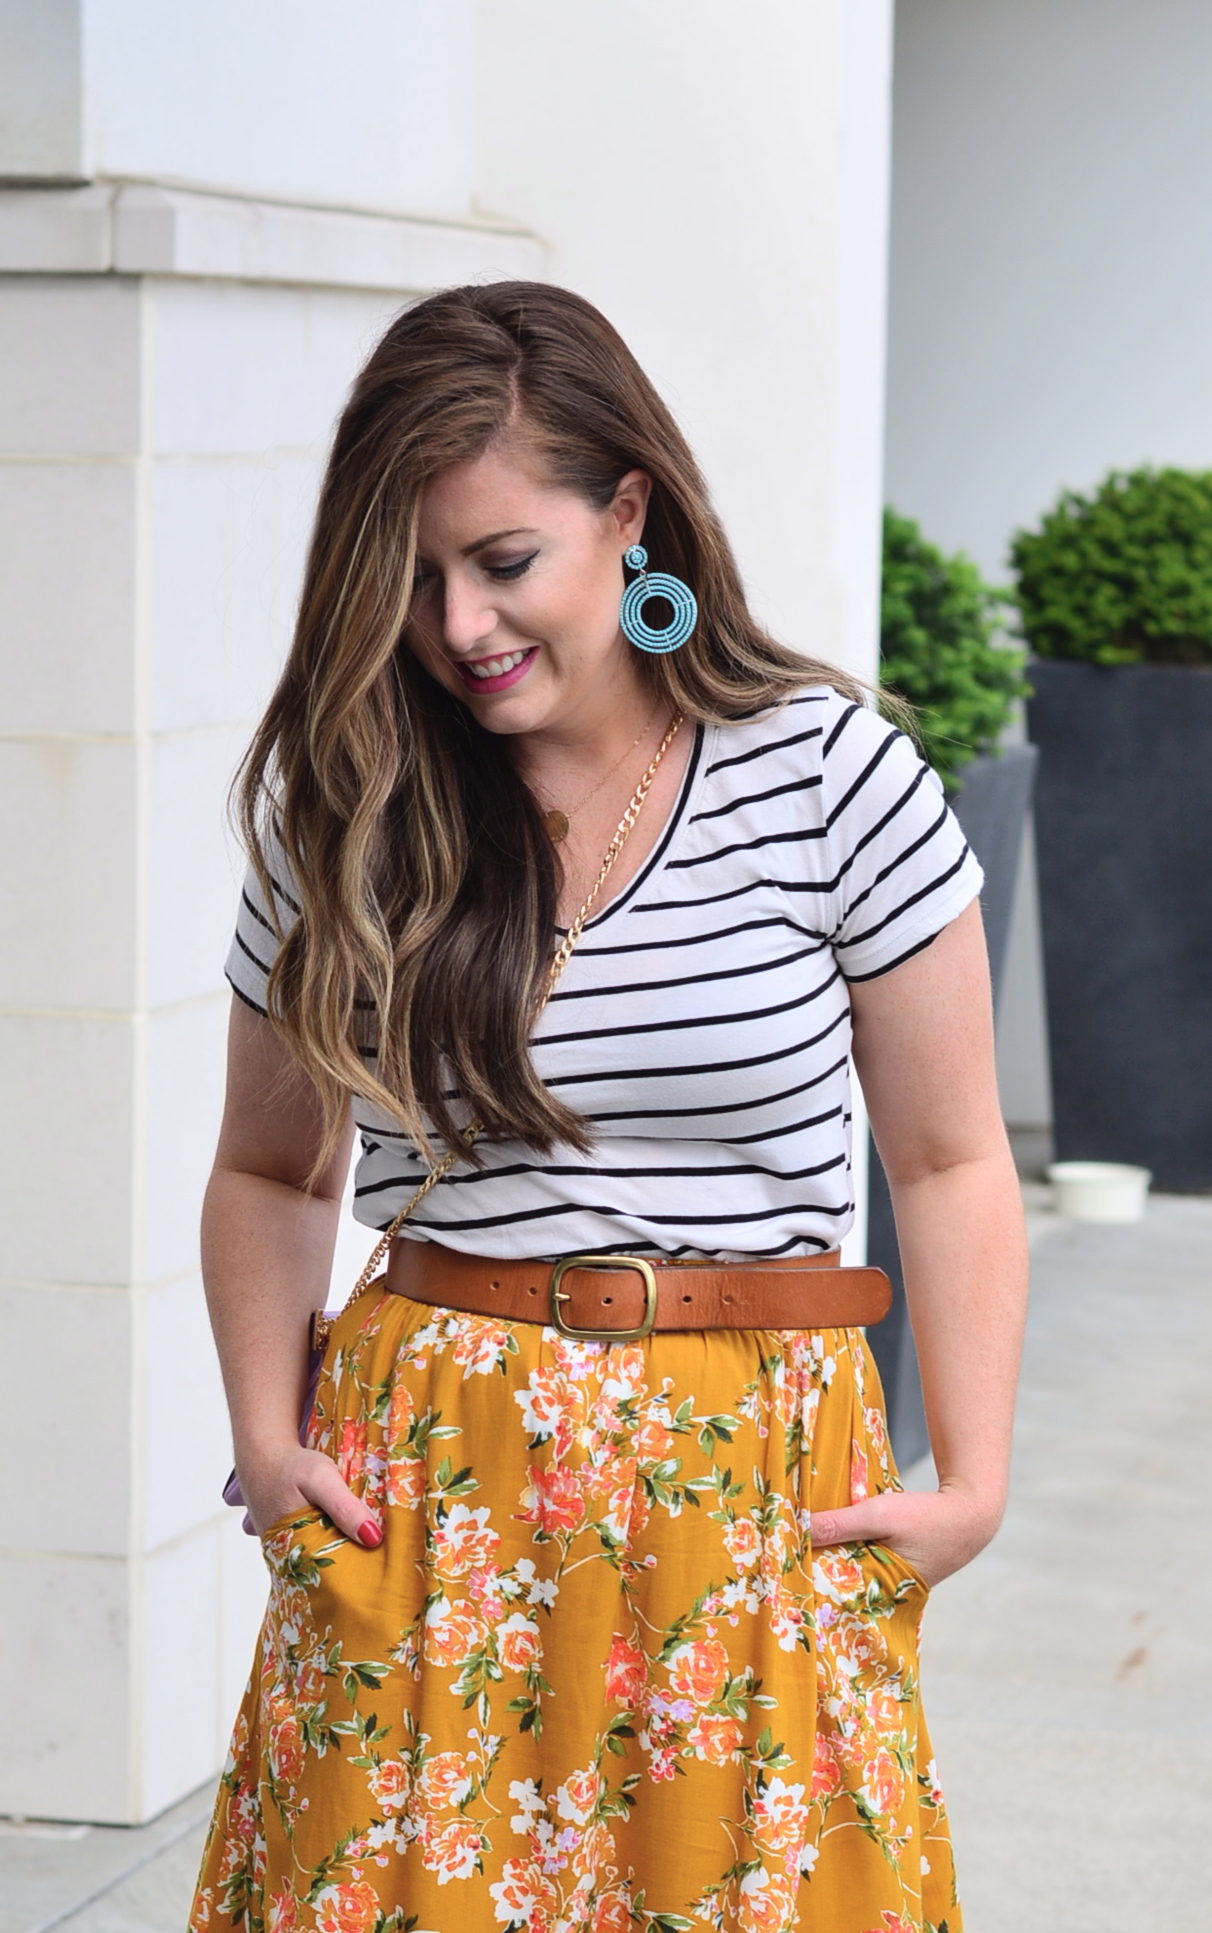 Stripe tee and floral skirt outfit